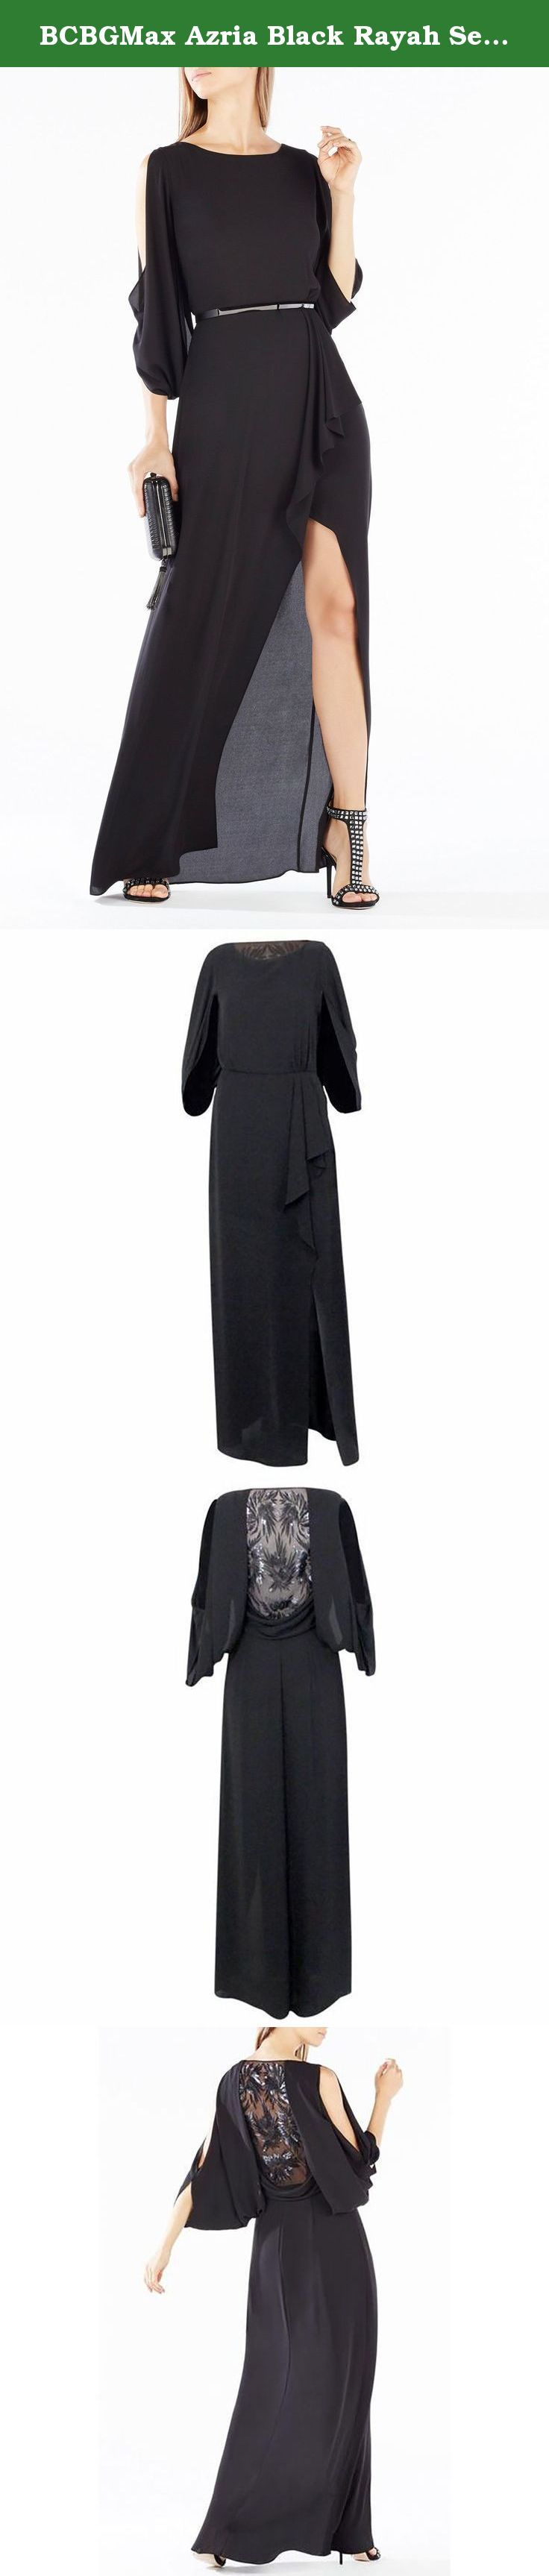 """BCBGMax Azria Black Rayah Sequin Embroidered Draped Back Gown (Size 2, Black). An effortless silhouette of a gown featuring an unexpected sheer tulle back embellished with shimmering sequins and embroidery, billowing cold-shoulder sleeves, a bateau neckline, defined waist with diaphanous ruffles that open into an extreme leg slit, and a concealed side zipper closure. Fully Lined. Bust 34"""", Waist 26"""", Hip 36.5""""; Length 61""""."""